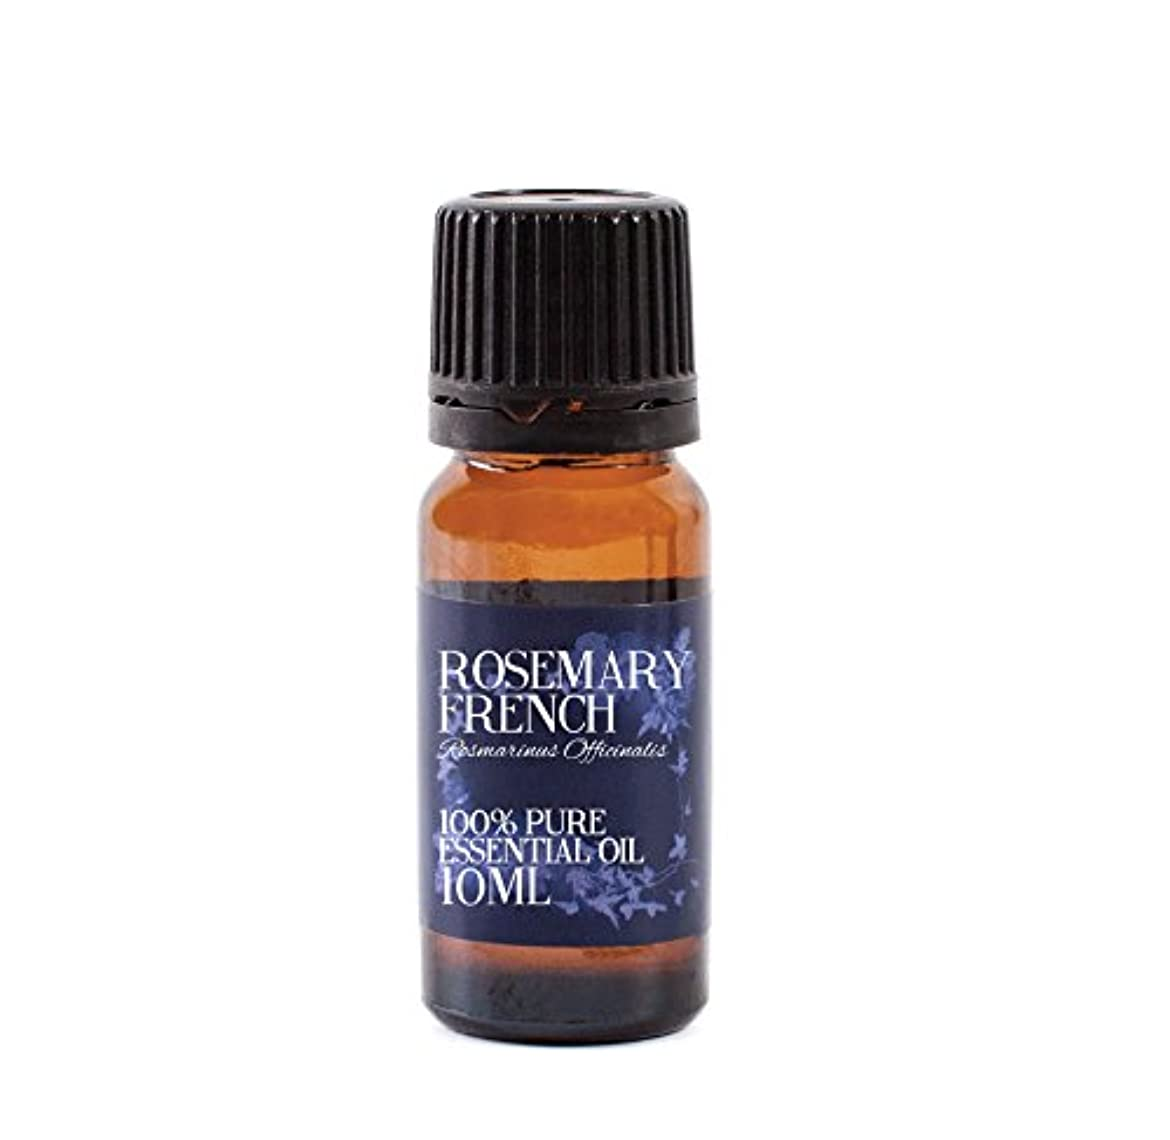 Mystic Moments | Rosemary French Essential Oil - 10ml - 100% Pure